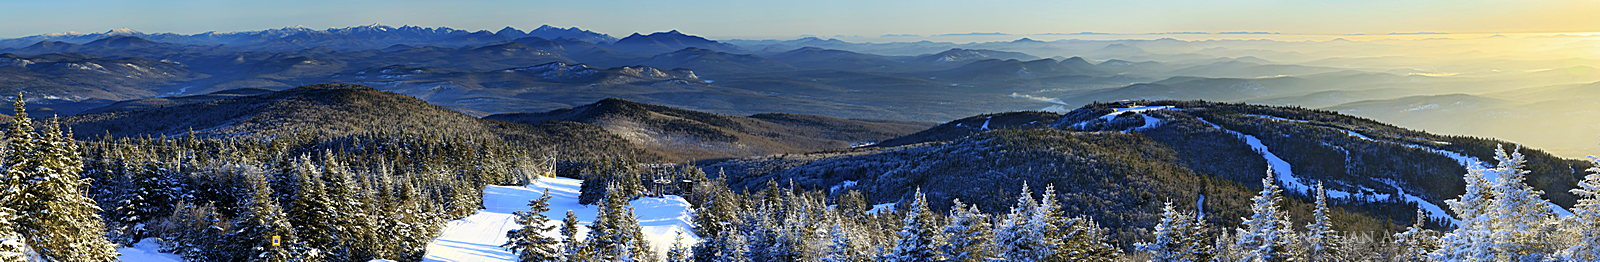 Gore Mountain,Gore Mt,ski area,ski trails,Cloud Trail,High Peaks,Adirondack Mountains,telephoto,winter,sunrise,treetop, photo